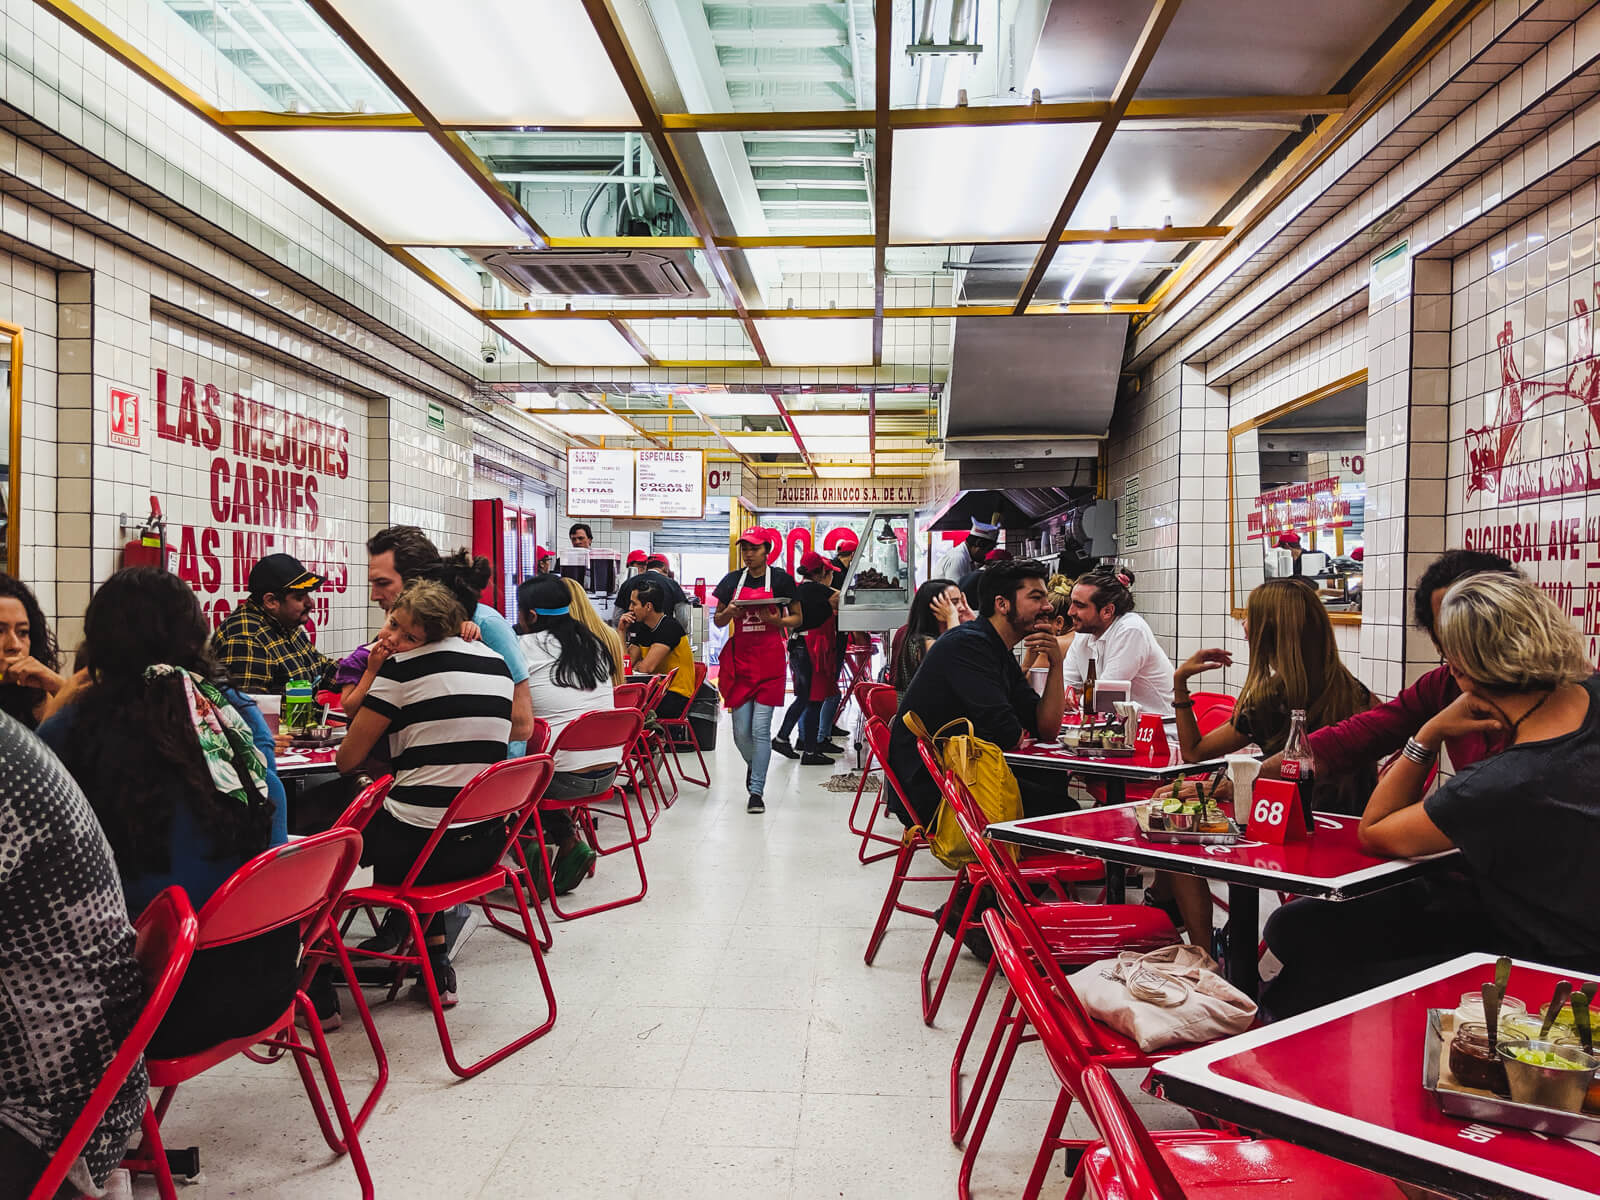 A restaurant filled with red folding chairs and tables with white tiled walls is filled with customers